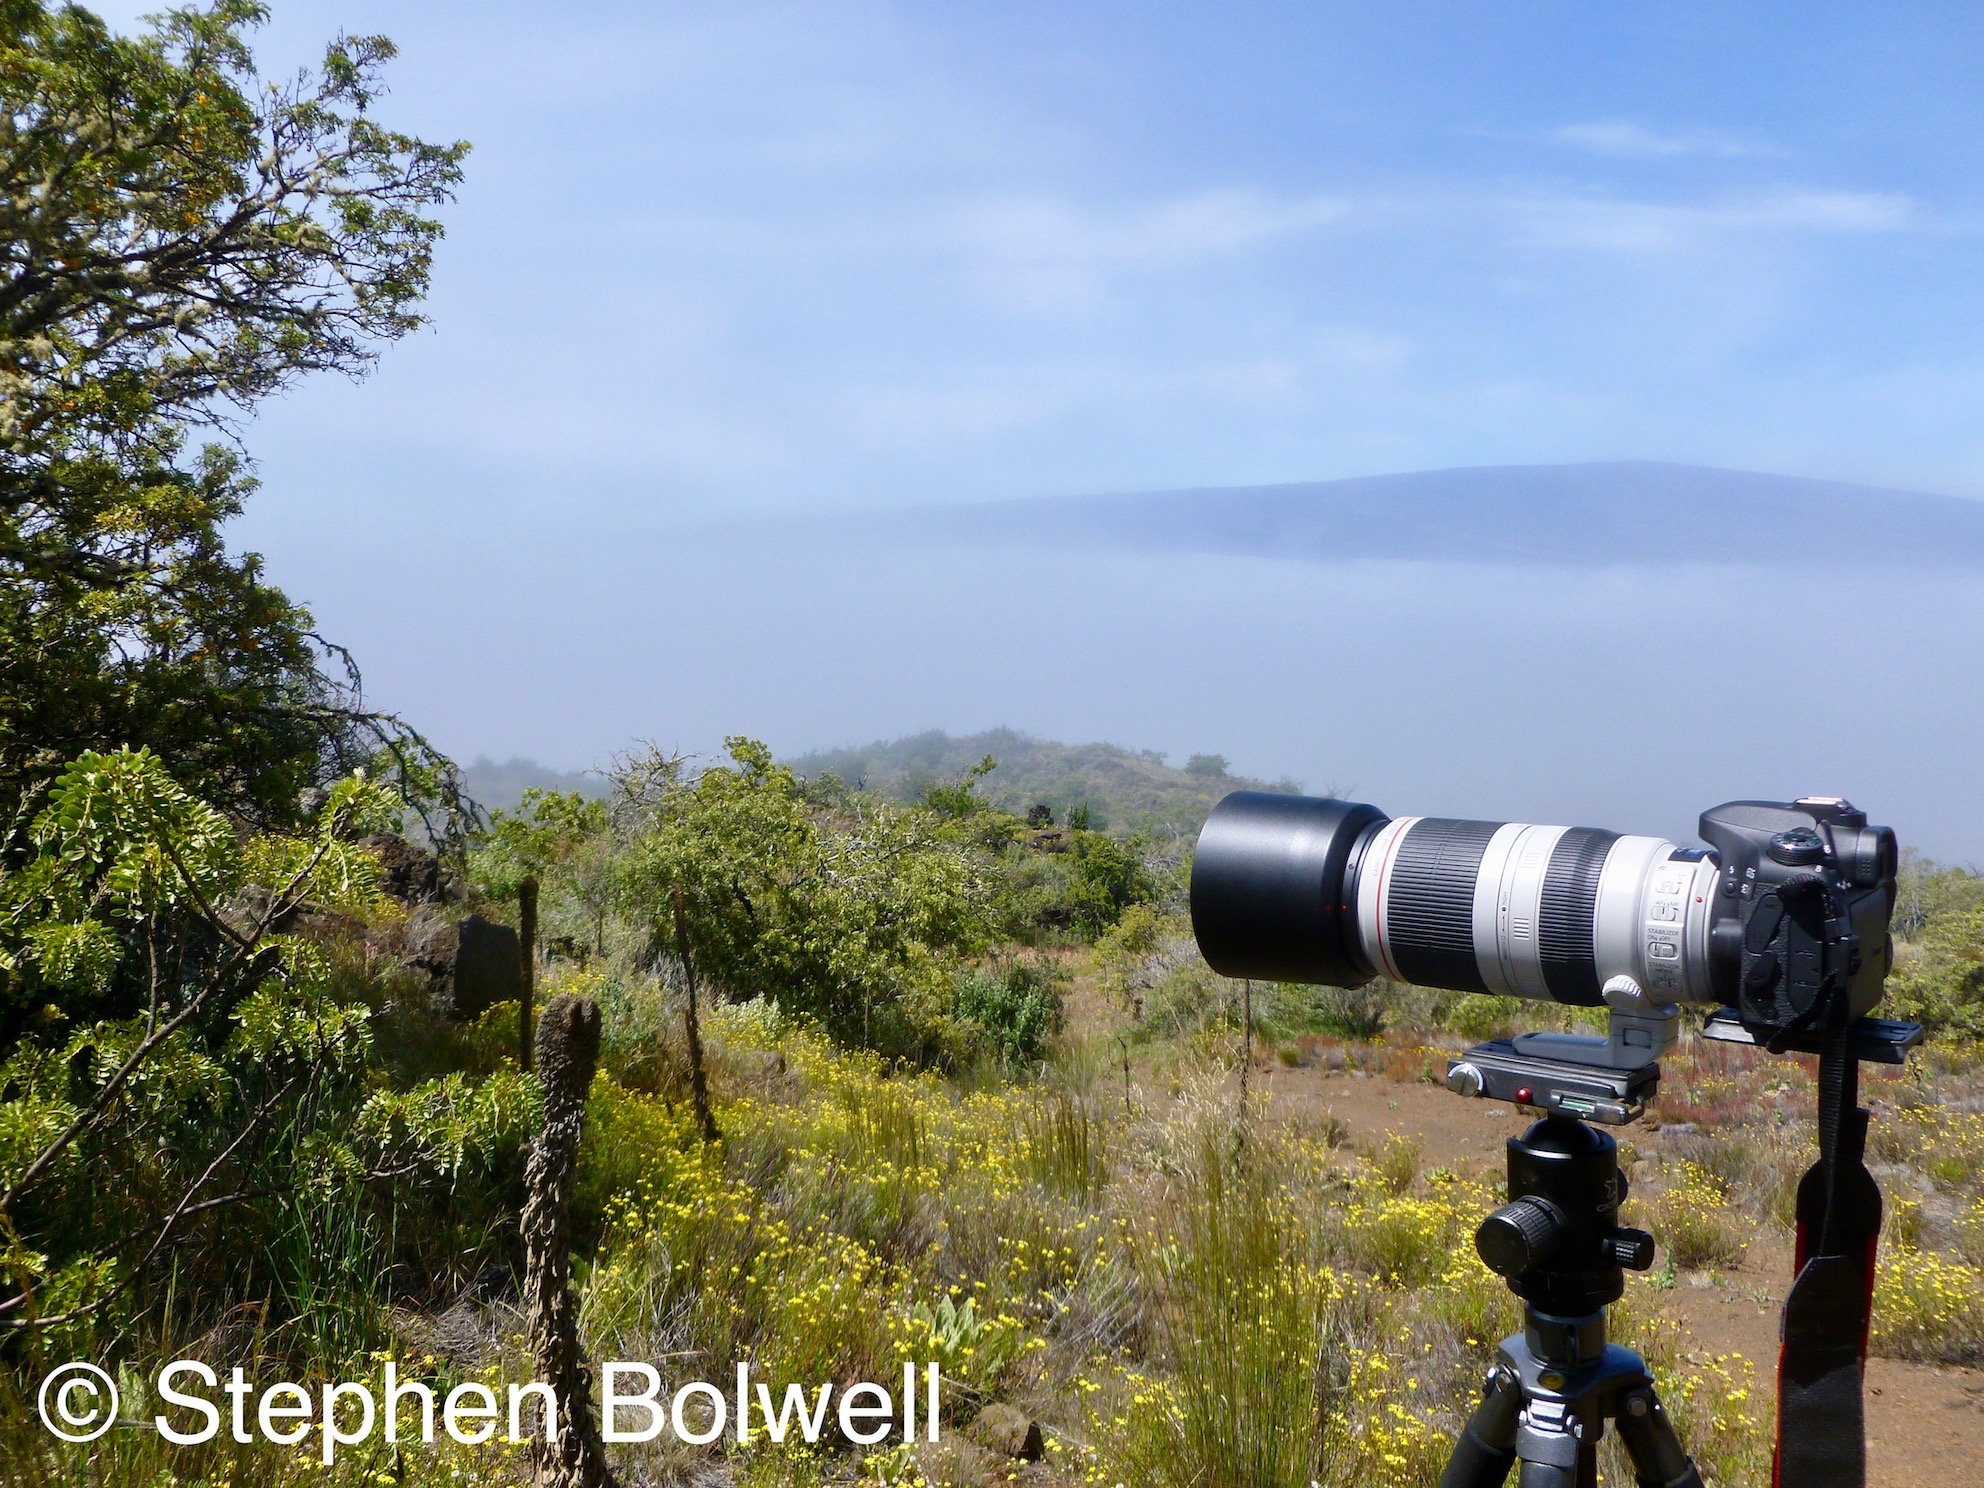 Standing just above the cloud line on Mauna Kea just before the tree line runs out into volcanic ash at about 9,000 ft, is possible to look across the saddle to Mauna Loa, here just peaking above the clouds.